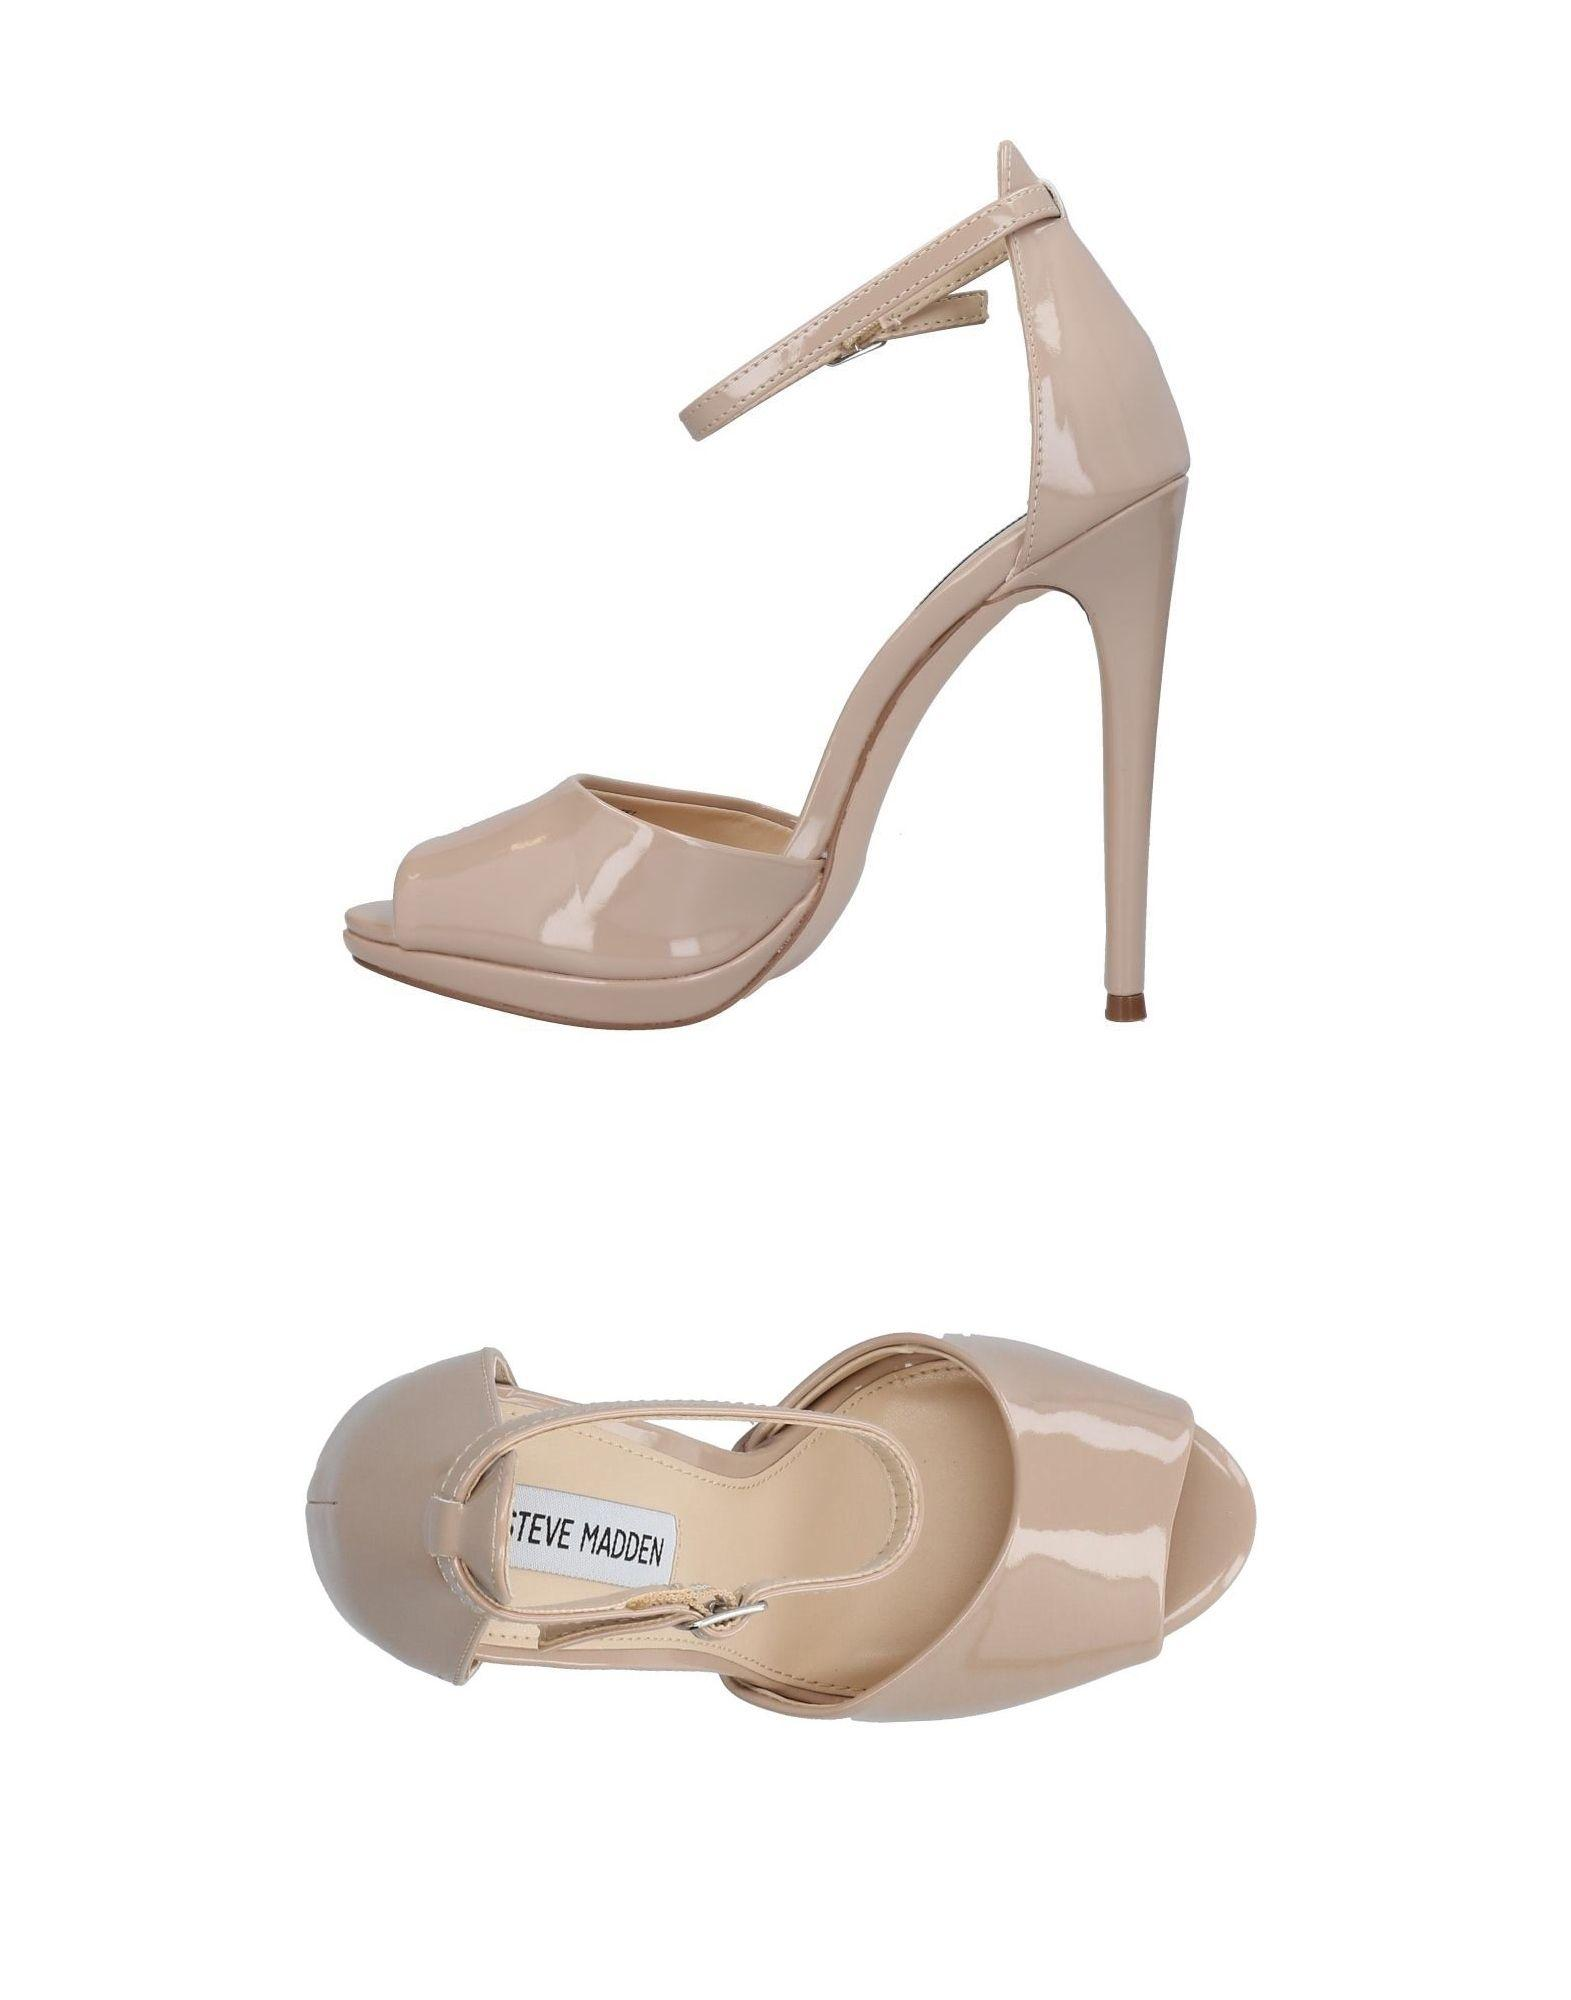 ad3ad10d78b4 Steve Madden Sandals In Pale Pink